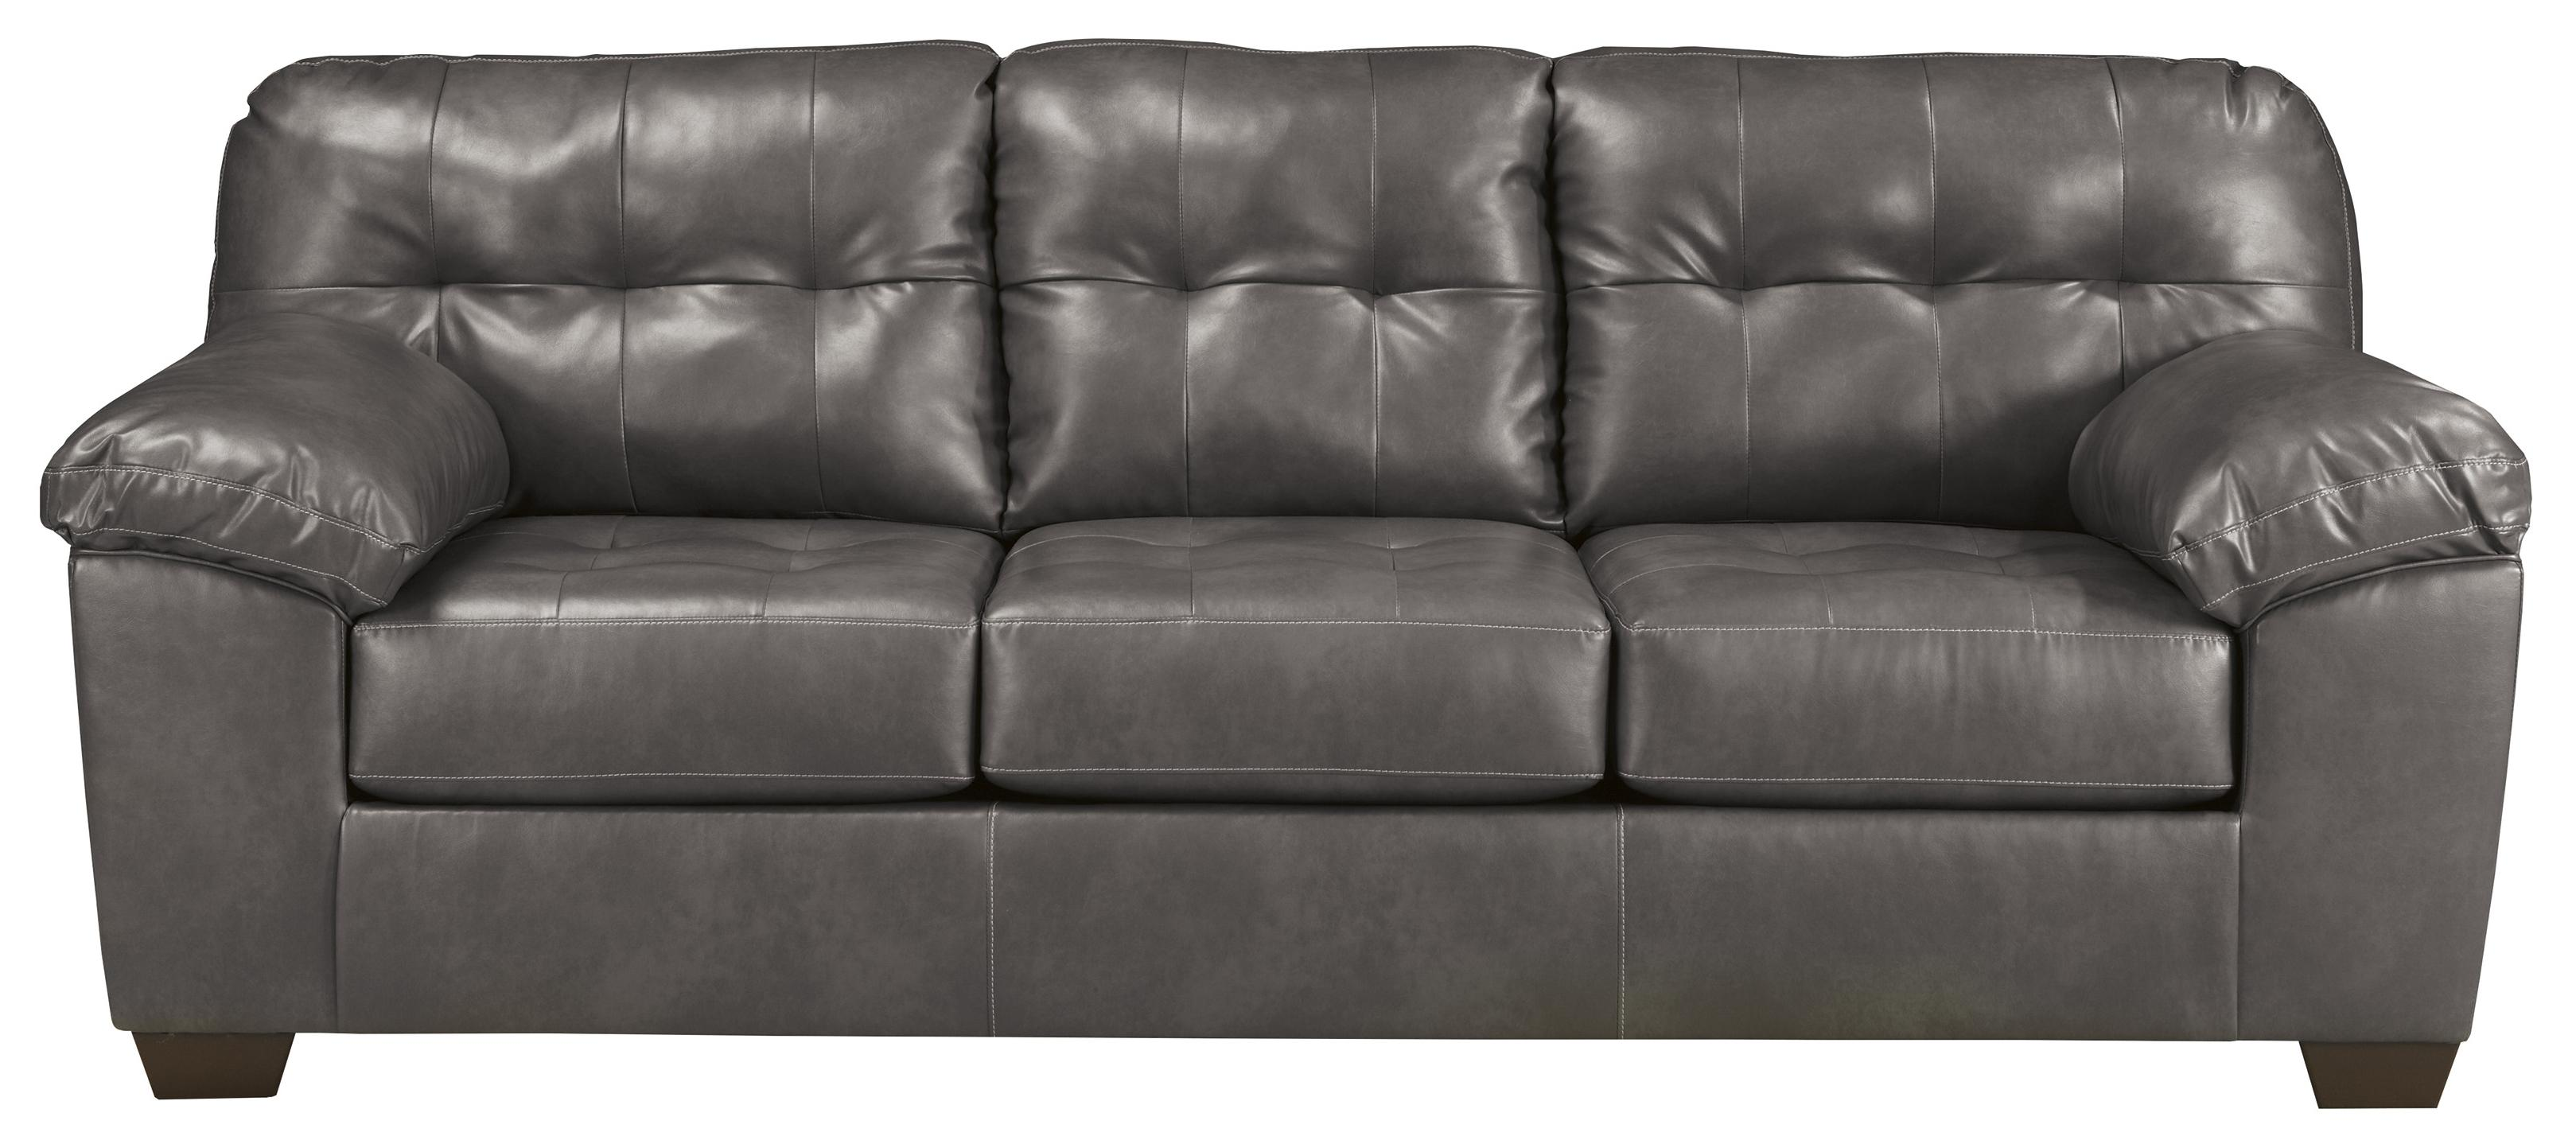 Signature Design by Ashley Furniture Alliston DuraBlend® - Gray Sofa - Item Number: 2010238